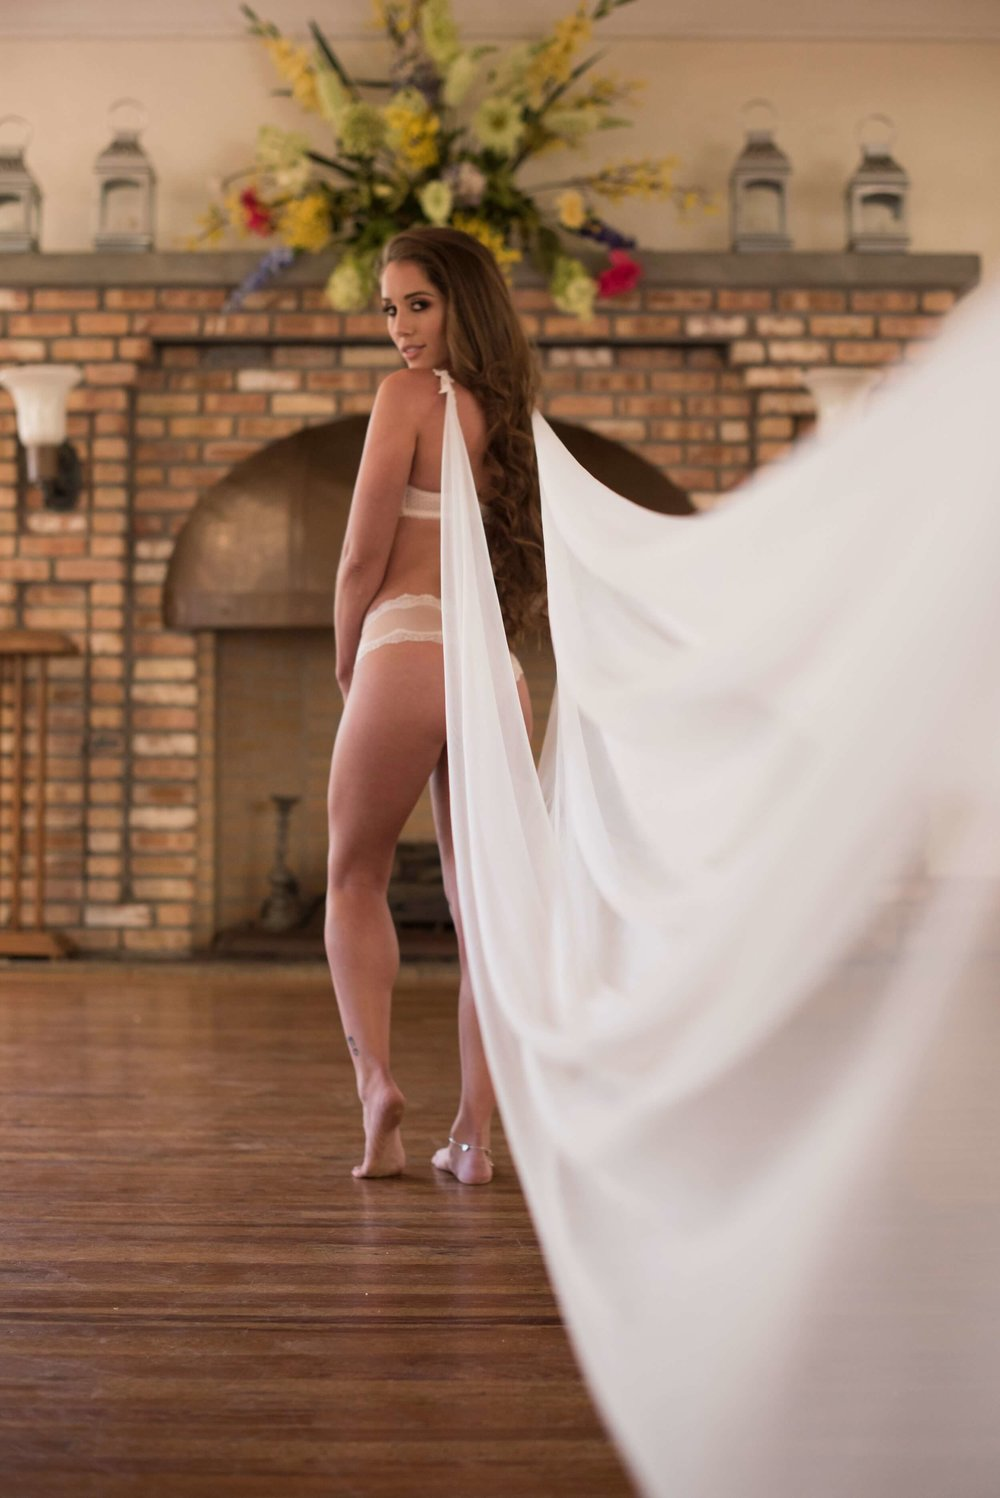 Bridal Boudoir by Graciela Valdes Photography (16).jpg